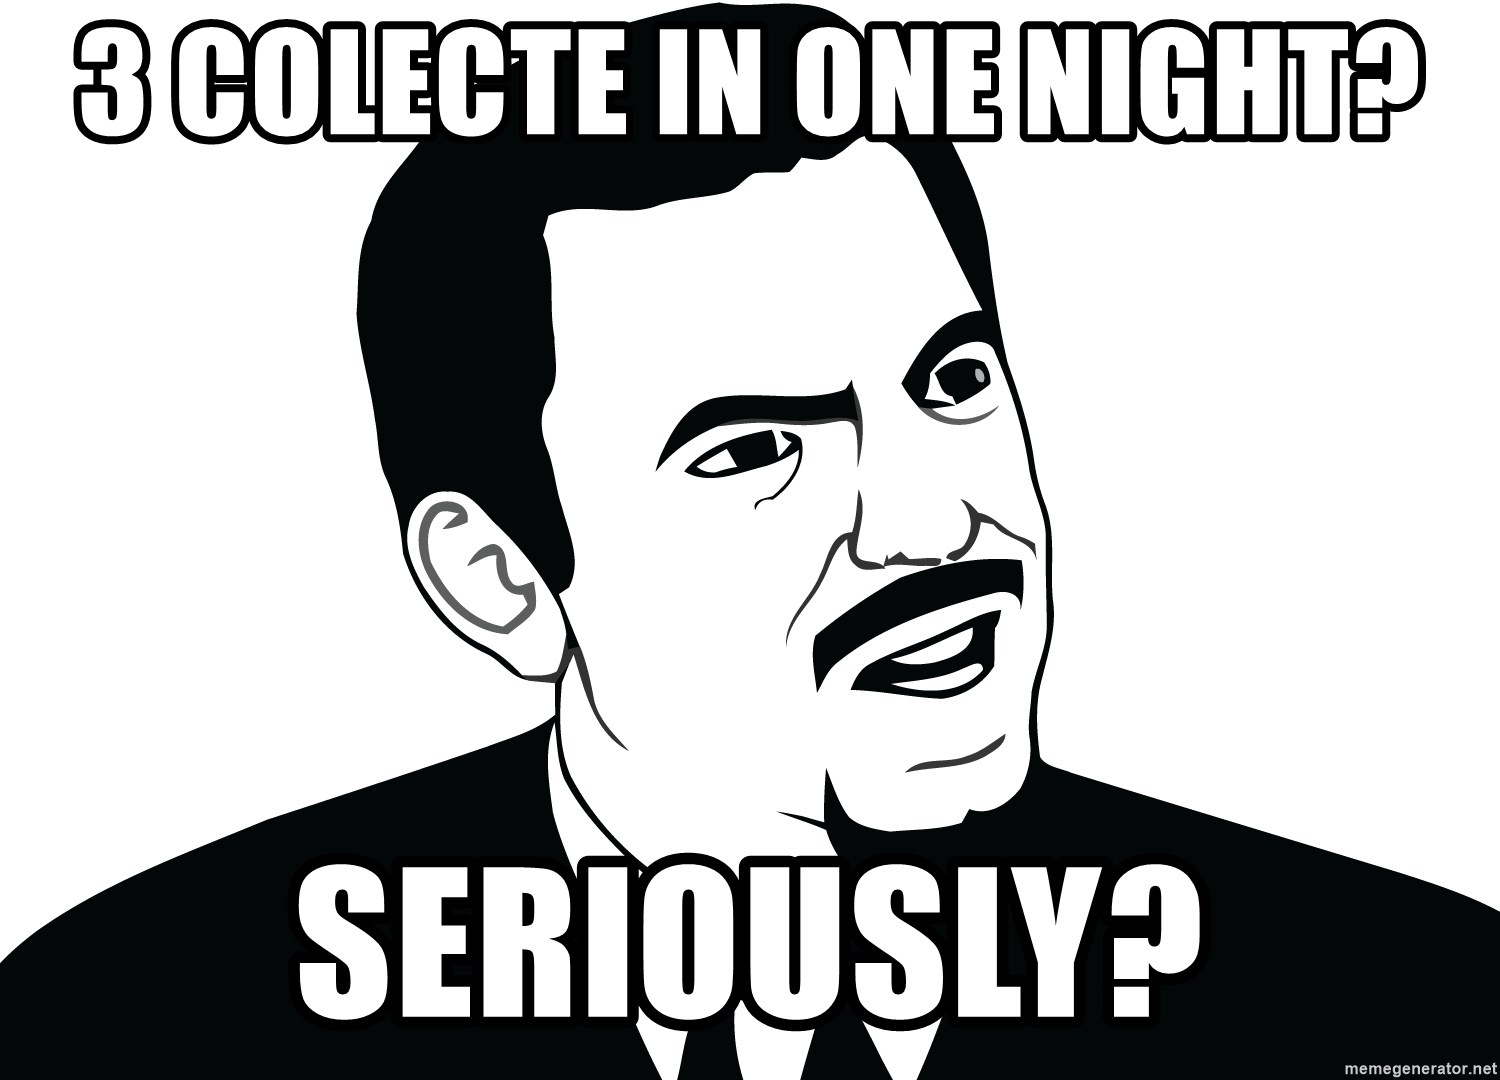 Are you serious face  - 3 colecte in one night? seriously?